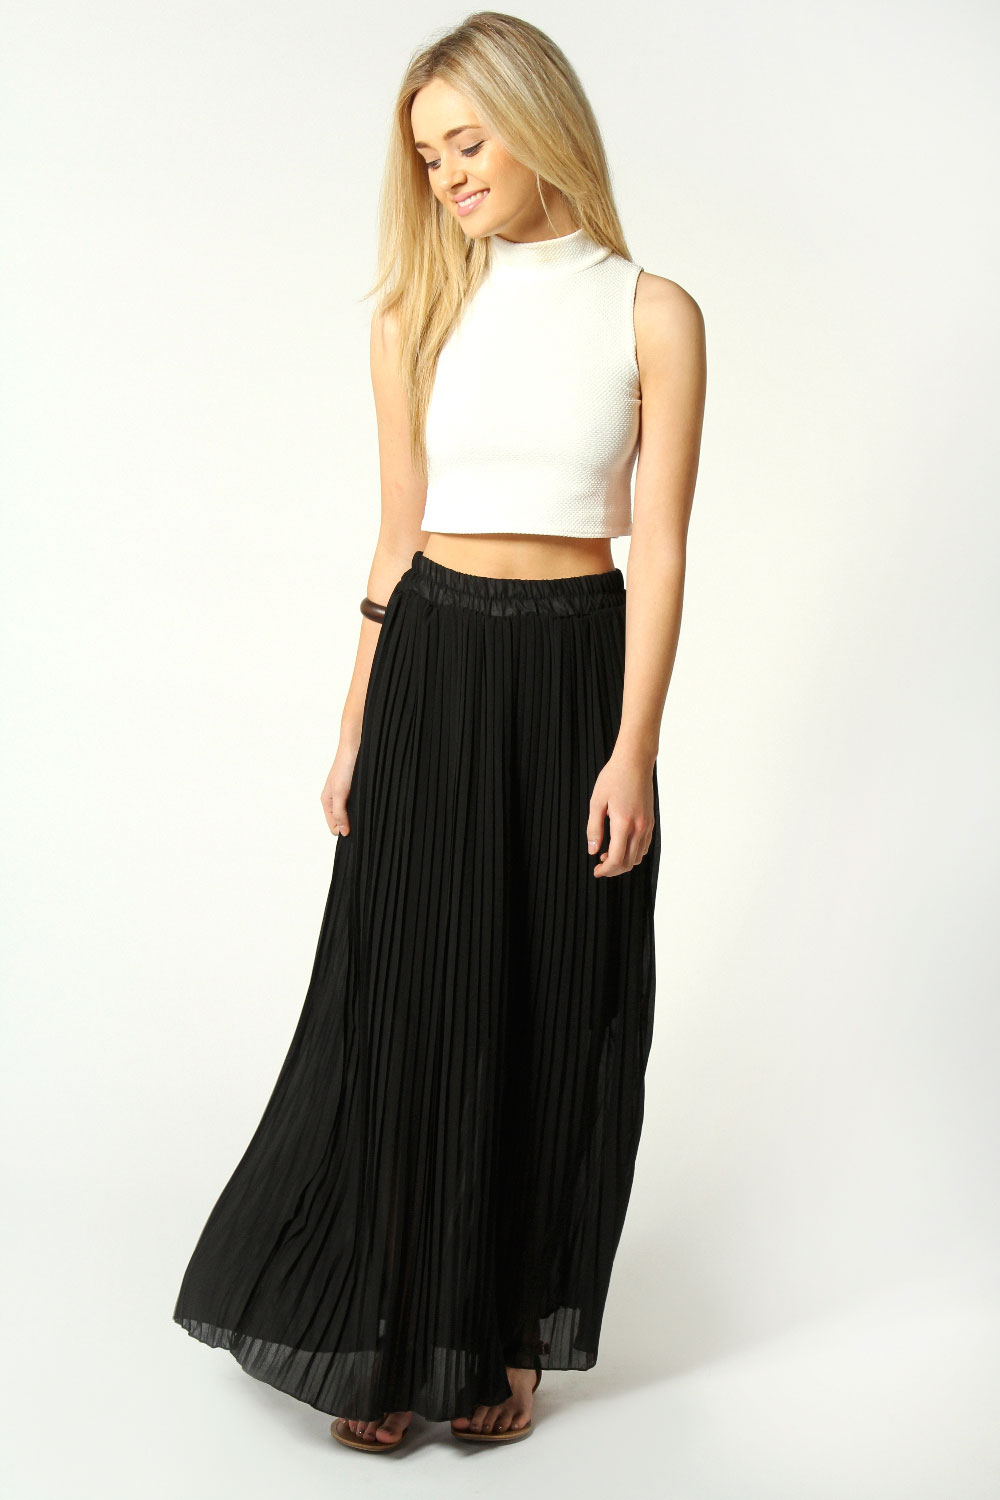 long black maxi skirt dressed up girl